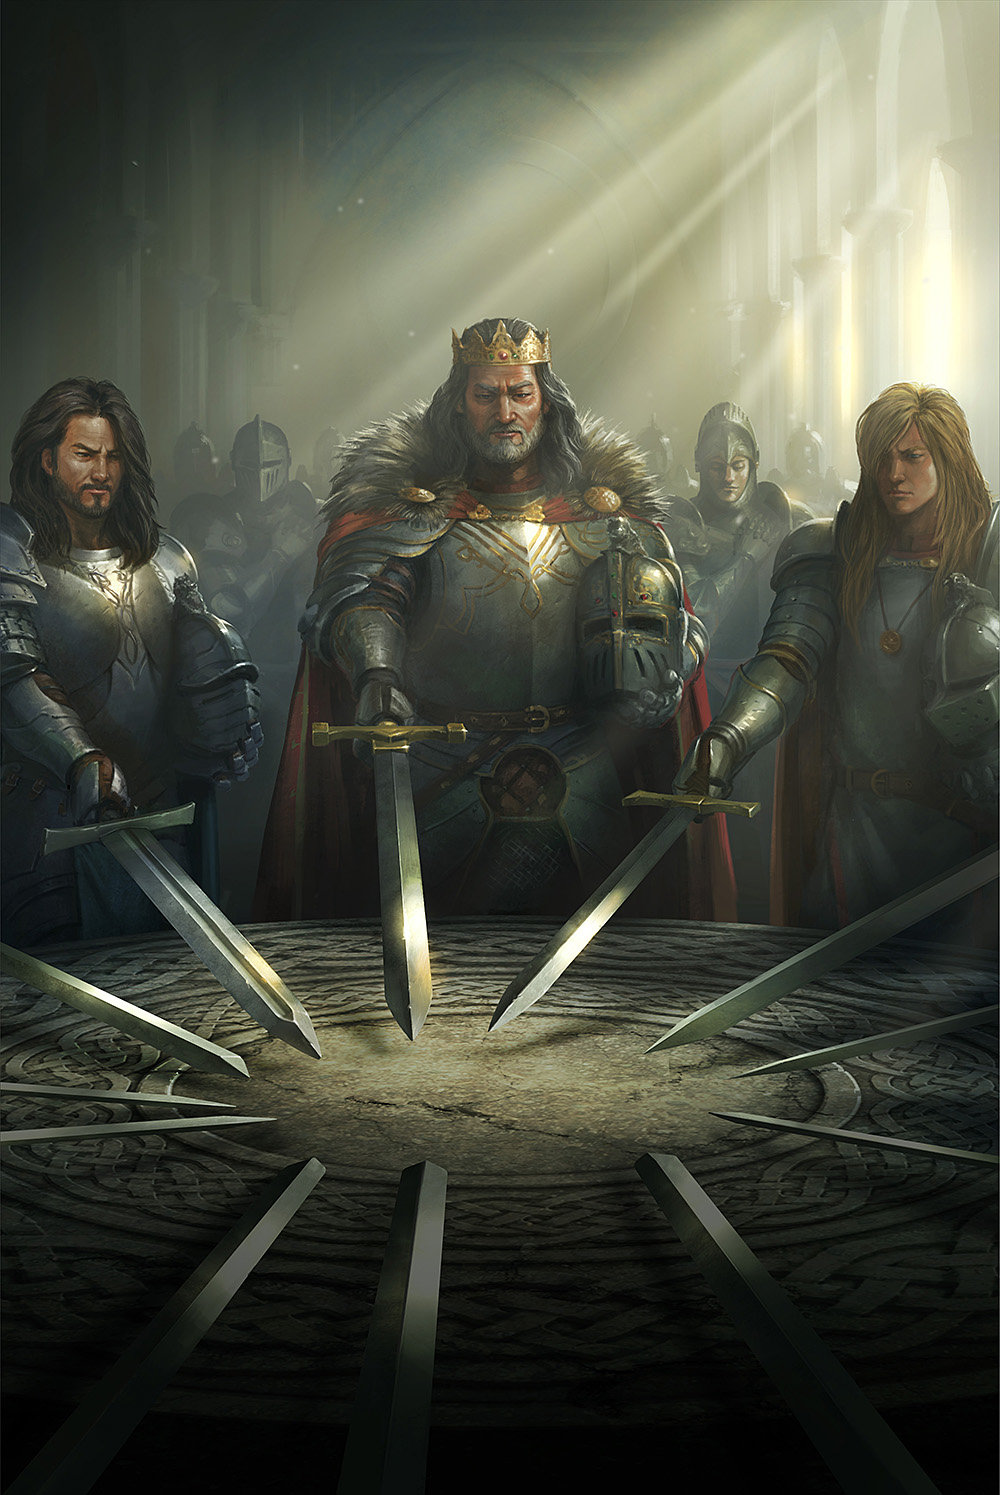 king arthur of the knights of the round table and camelot did he exist Some knights died and other brave and good knights came to camelot one day a new knight, sir pellinore, arrived at camelot, and arthur gave him a place at the round table.